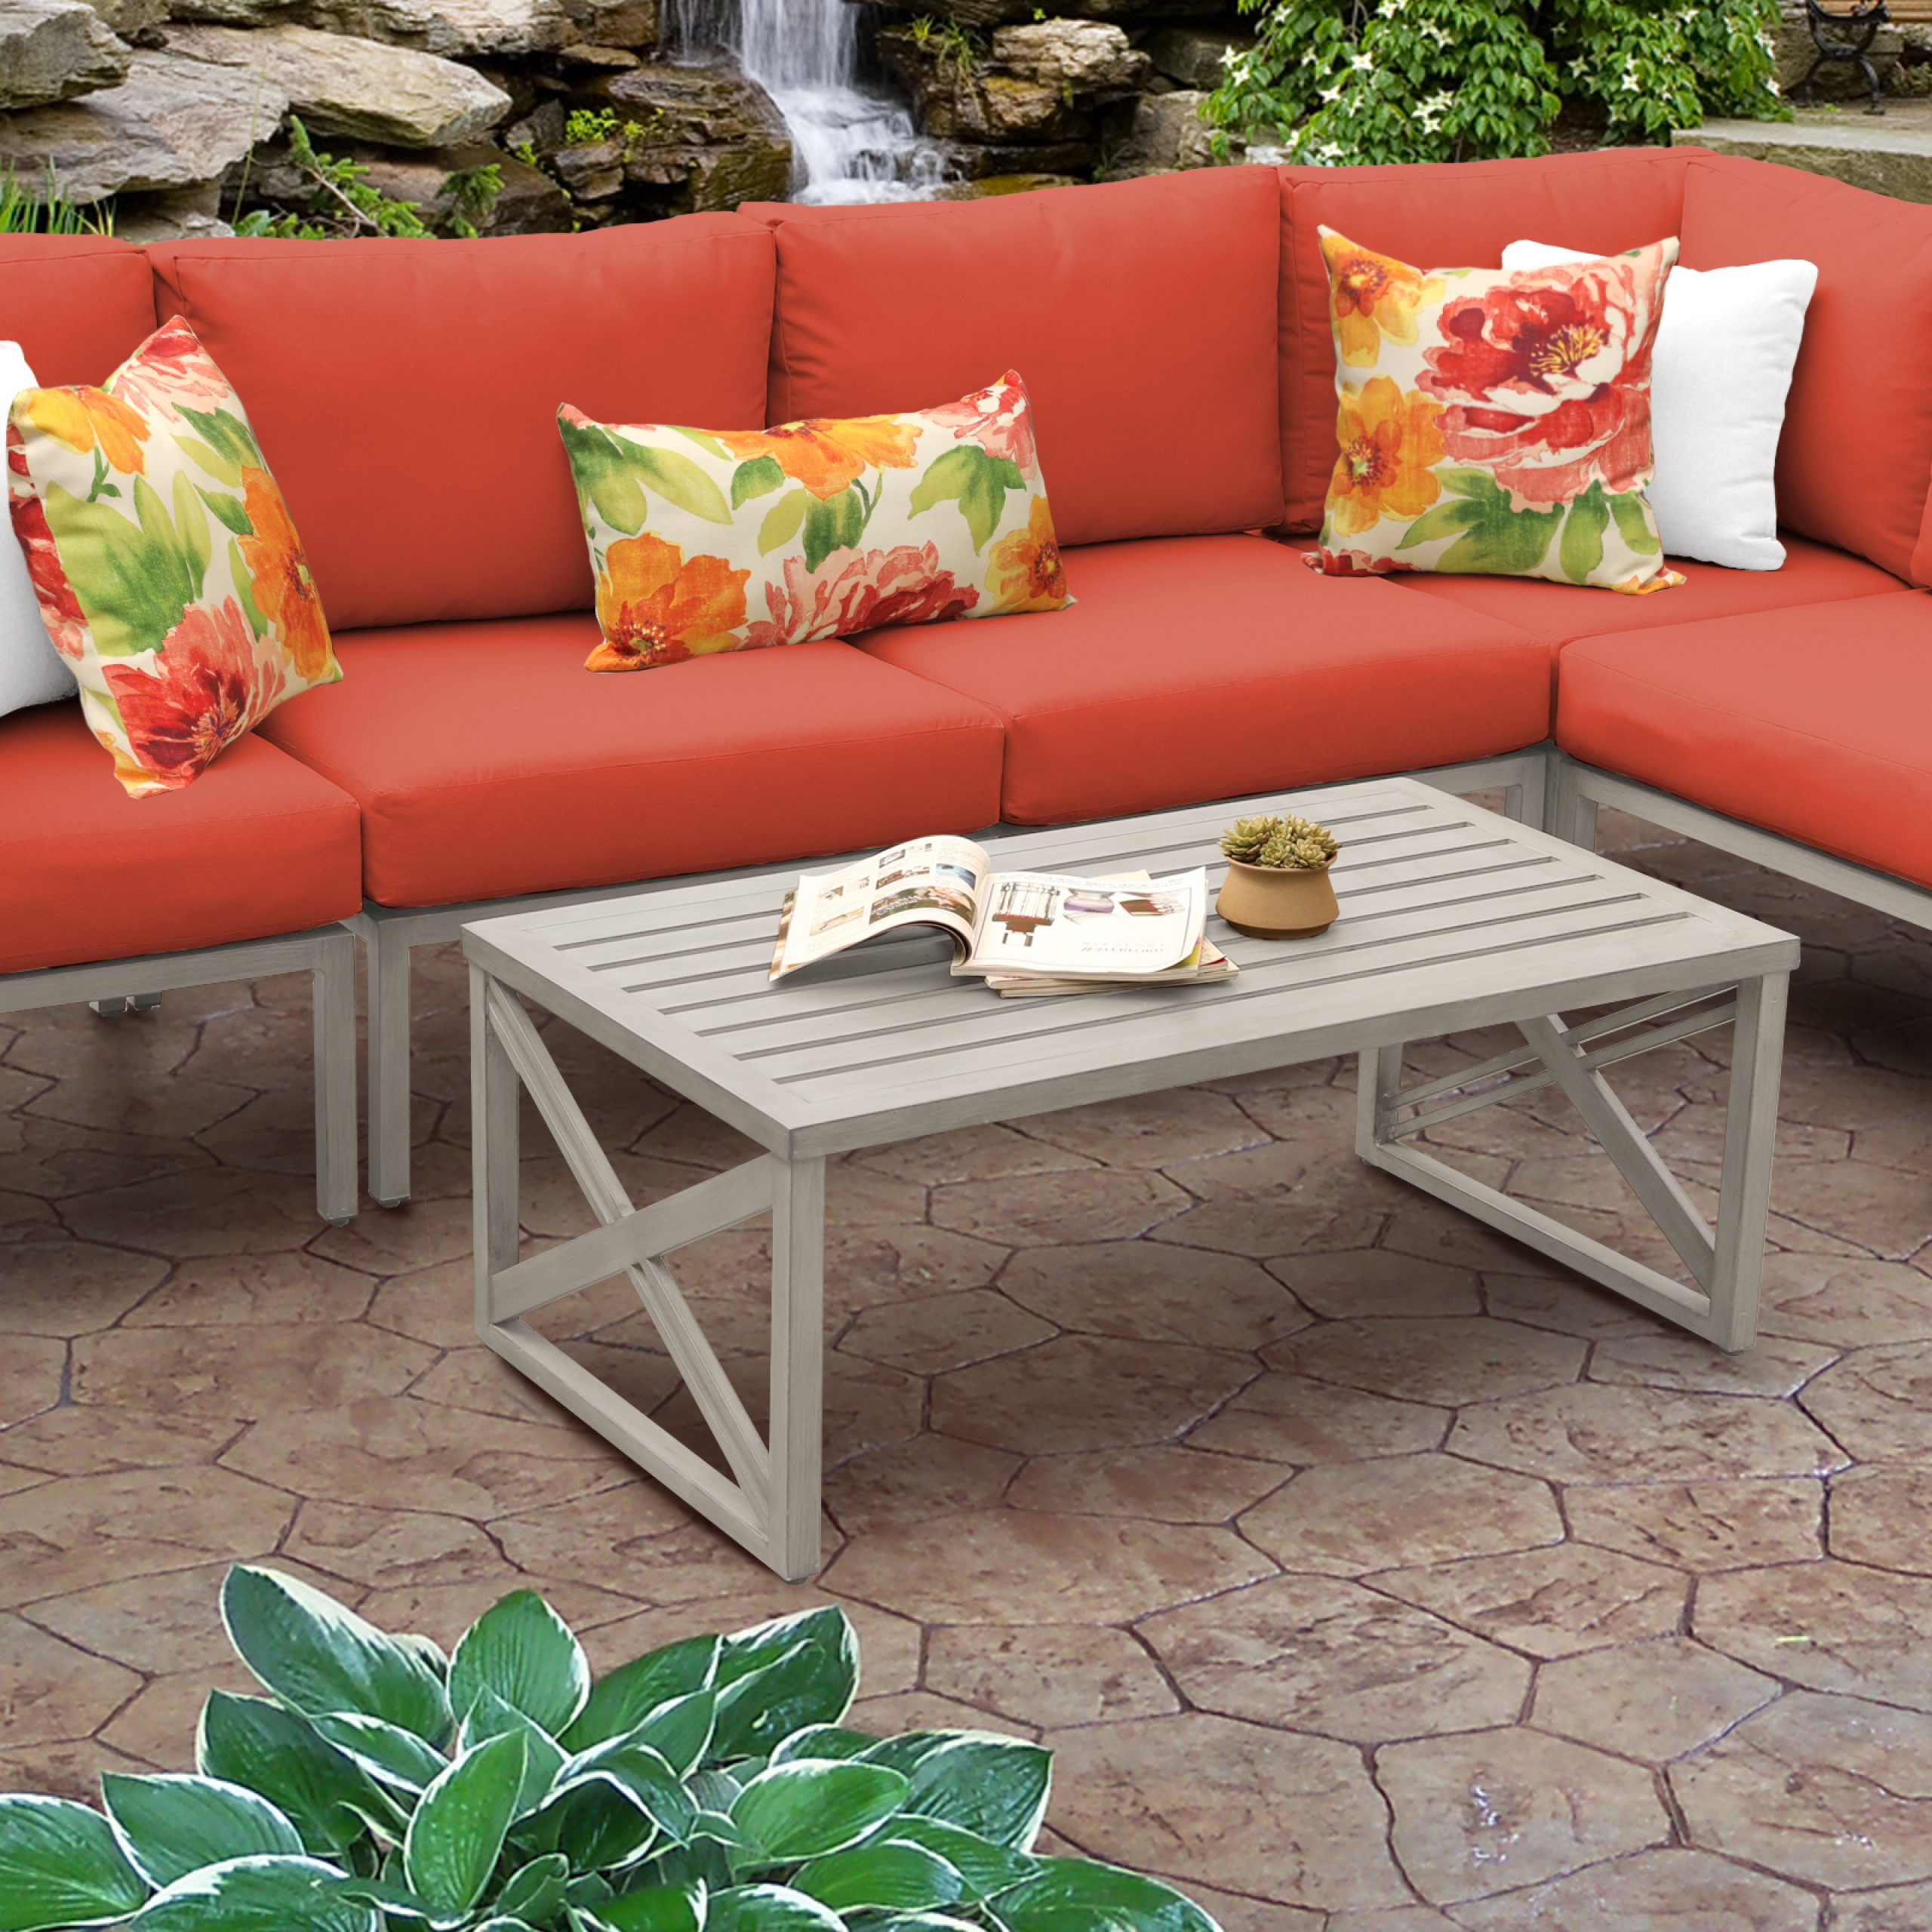 Popular Carlisle Patio Sofas With Cushions In Carlisle 6 Piece Outdoor Aluminum Patio Furniture Set 06A (View 21 of 25)